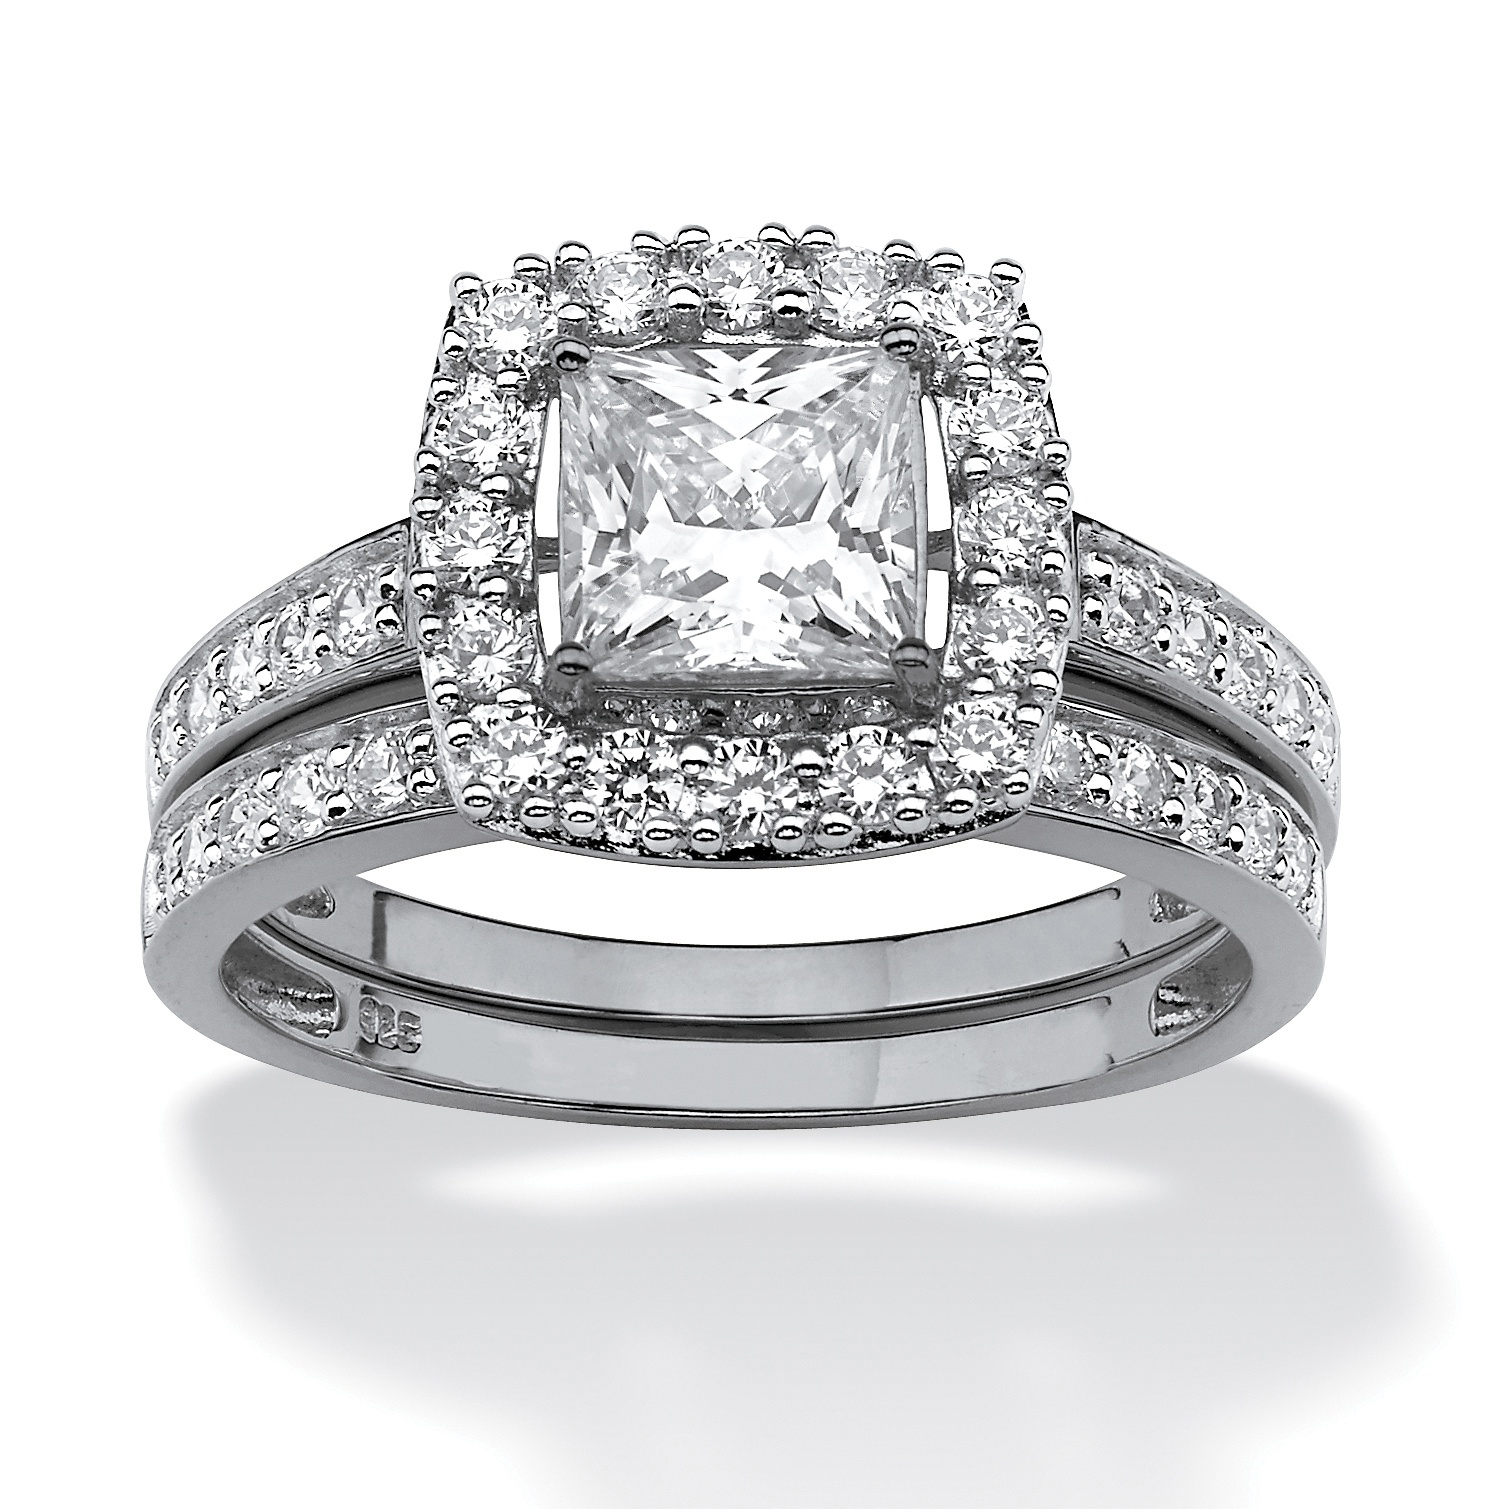 1.93 TCW Princess Cut Cubic Zirconia Two Piece Bridal Set In Platinum Over  Sterling Silver At PalmBeach Jewelry